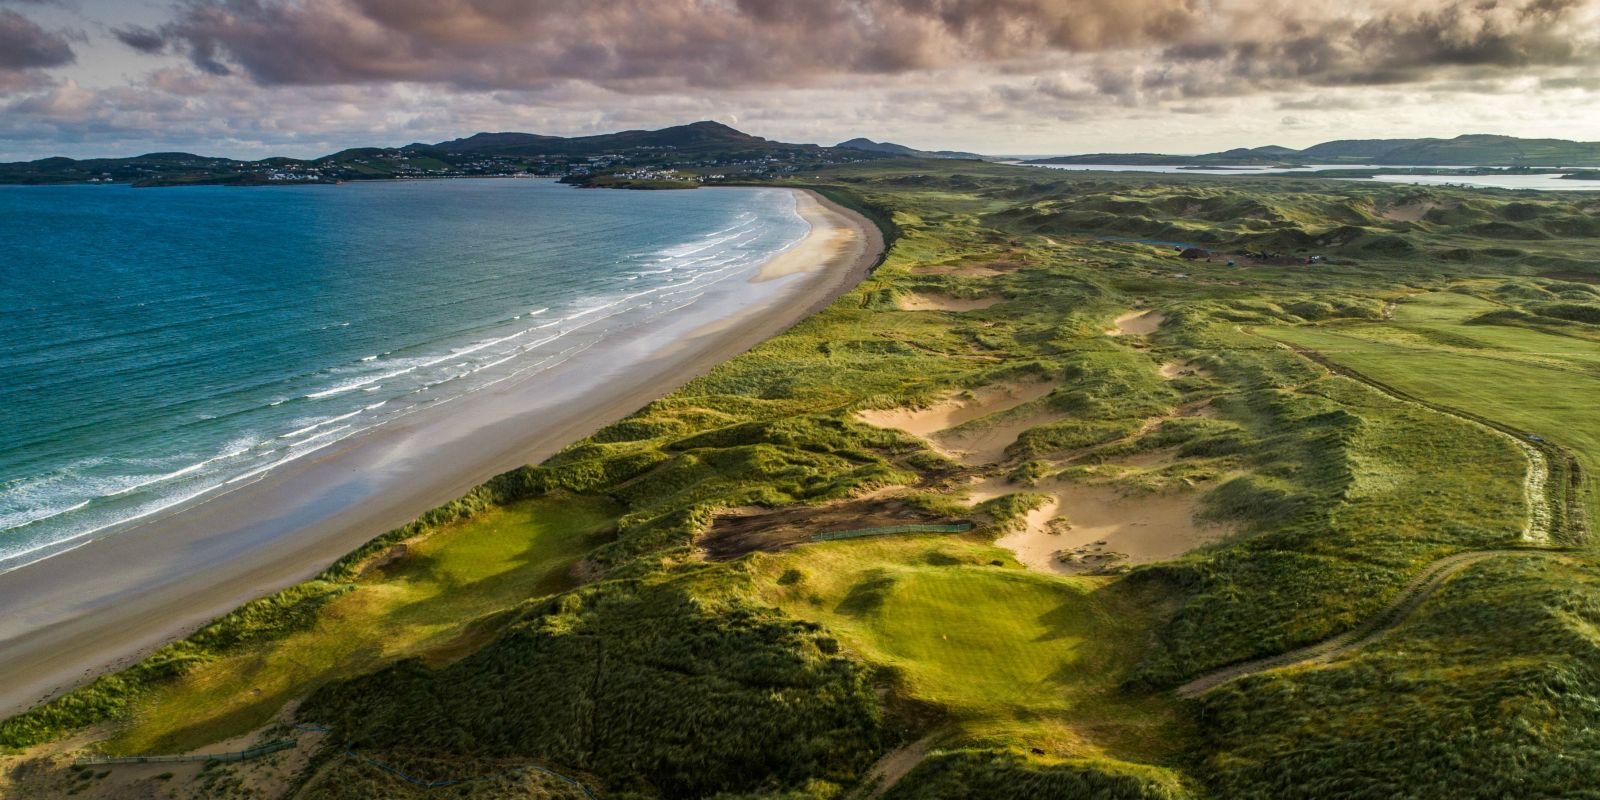 Drone image of St. Patrick's Links, Co. Donegal